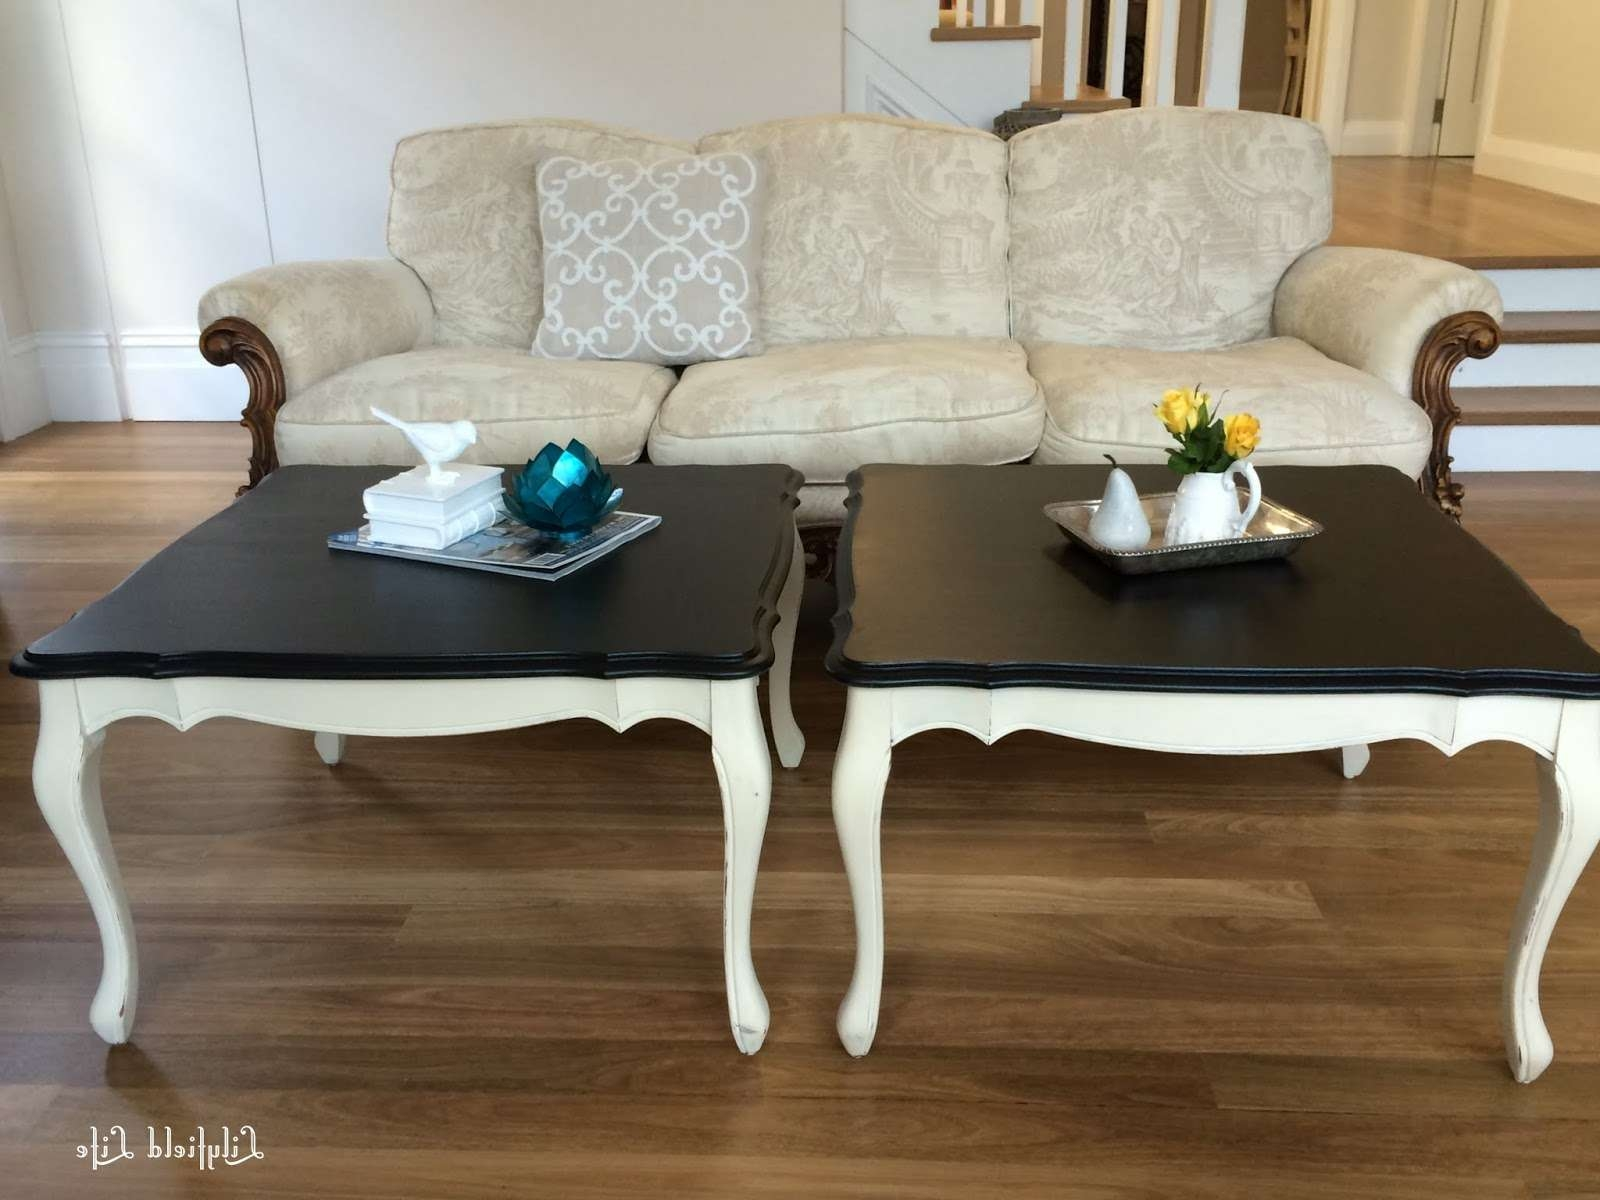 Lilyfield Life: A Pair Of French Style Coffee Tables Intended For Popular French Style Coffee Tables (View 10 of 20)